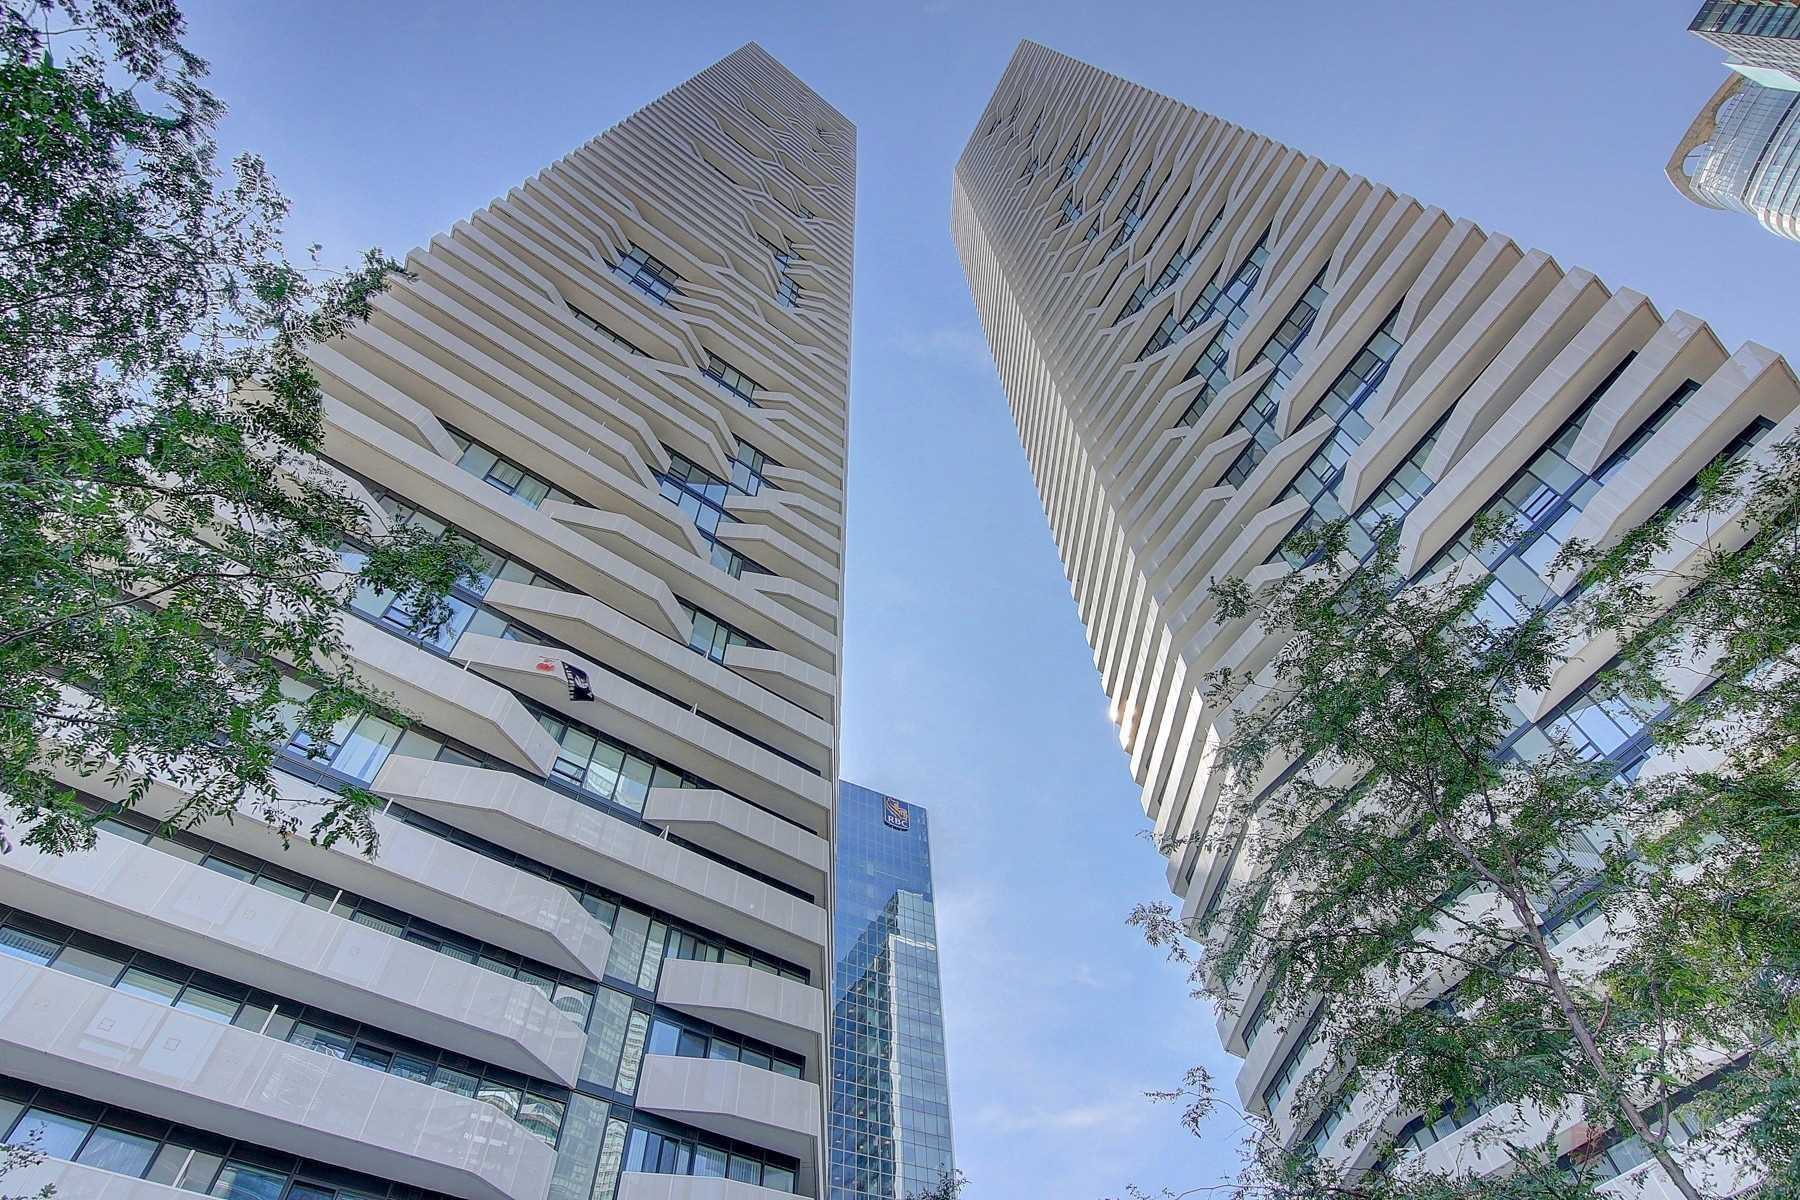 Main Photo: 1401 100 Harbour Street in Toronto: Waterfront Communities C1 Condo for lease (Toronto C01)  : MLS®# C4977762